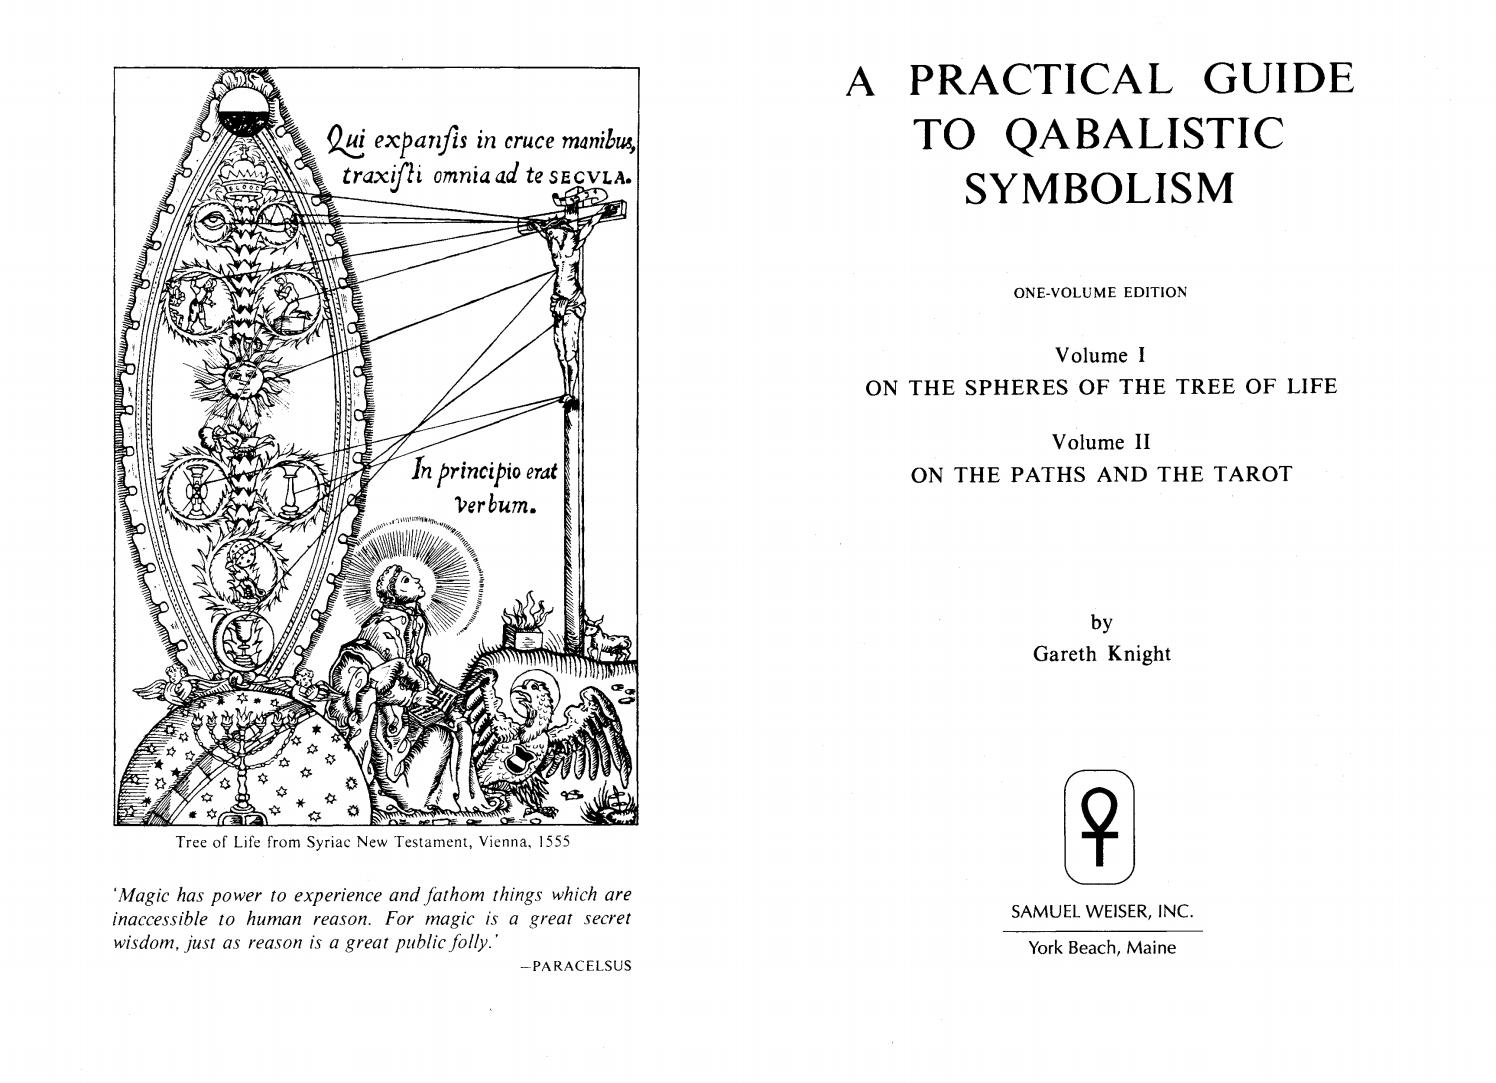 Practical Guide to Qabalistic Symbolism by Gareth Knight by Stav